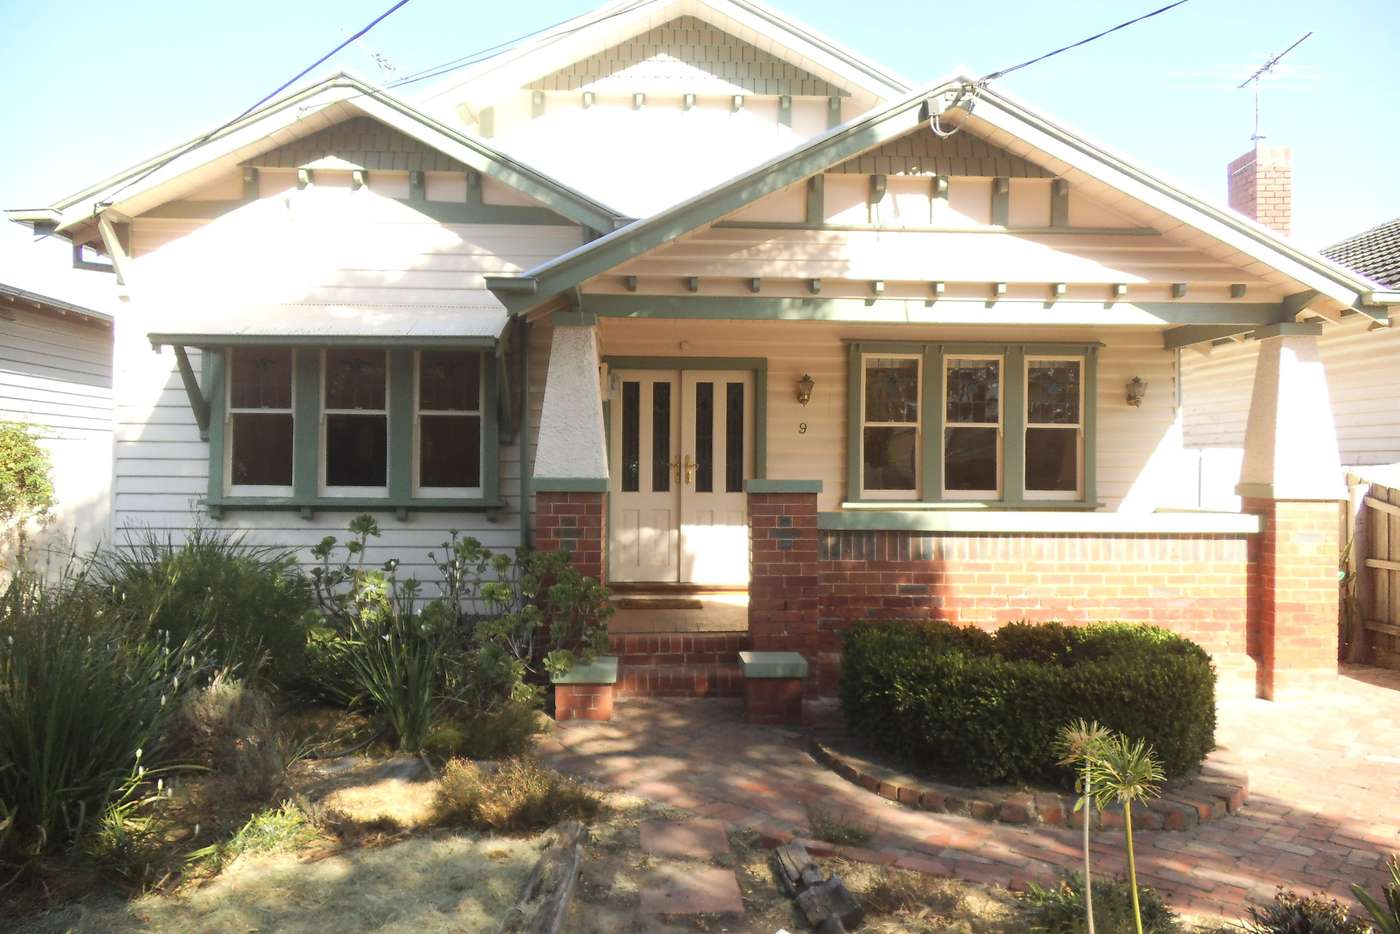 Main view of Homely house listing, 9 Jamieson Street, Coburg VIC 3058